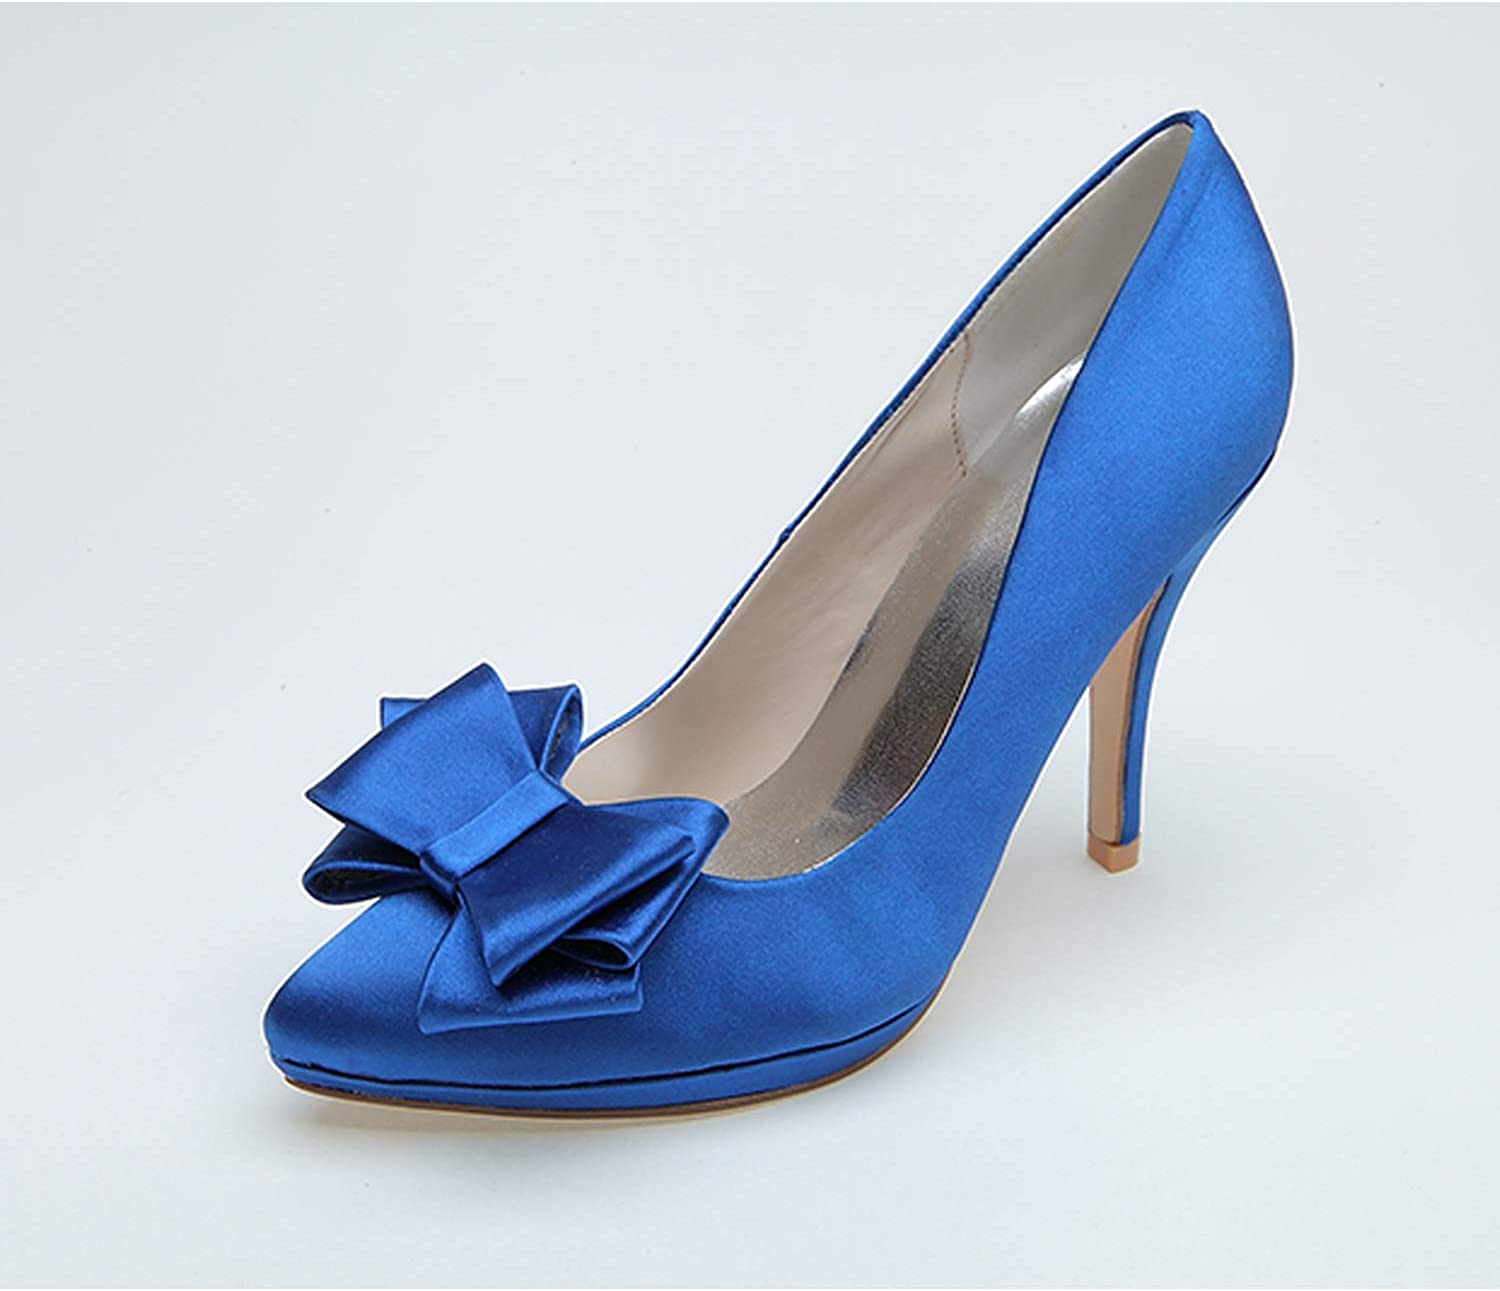 YUGUO High Heels High-Grade New Spring Summer and Autumn High Heel Stiletto BowWild Pointed shoes shoes